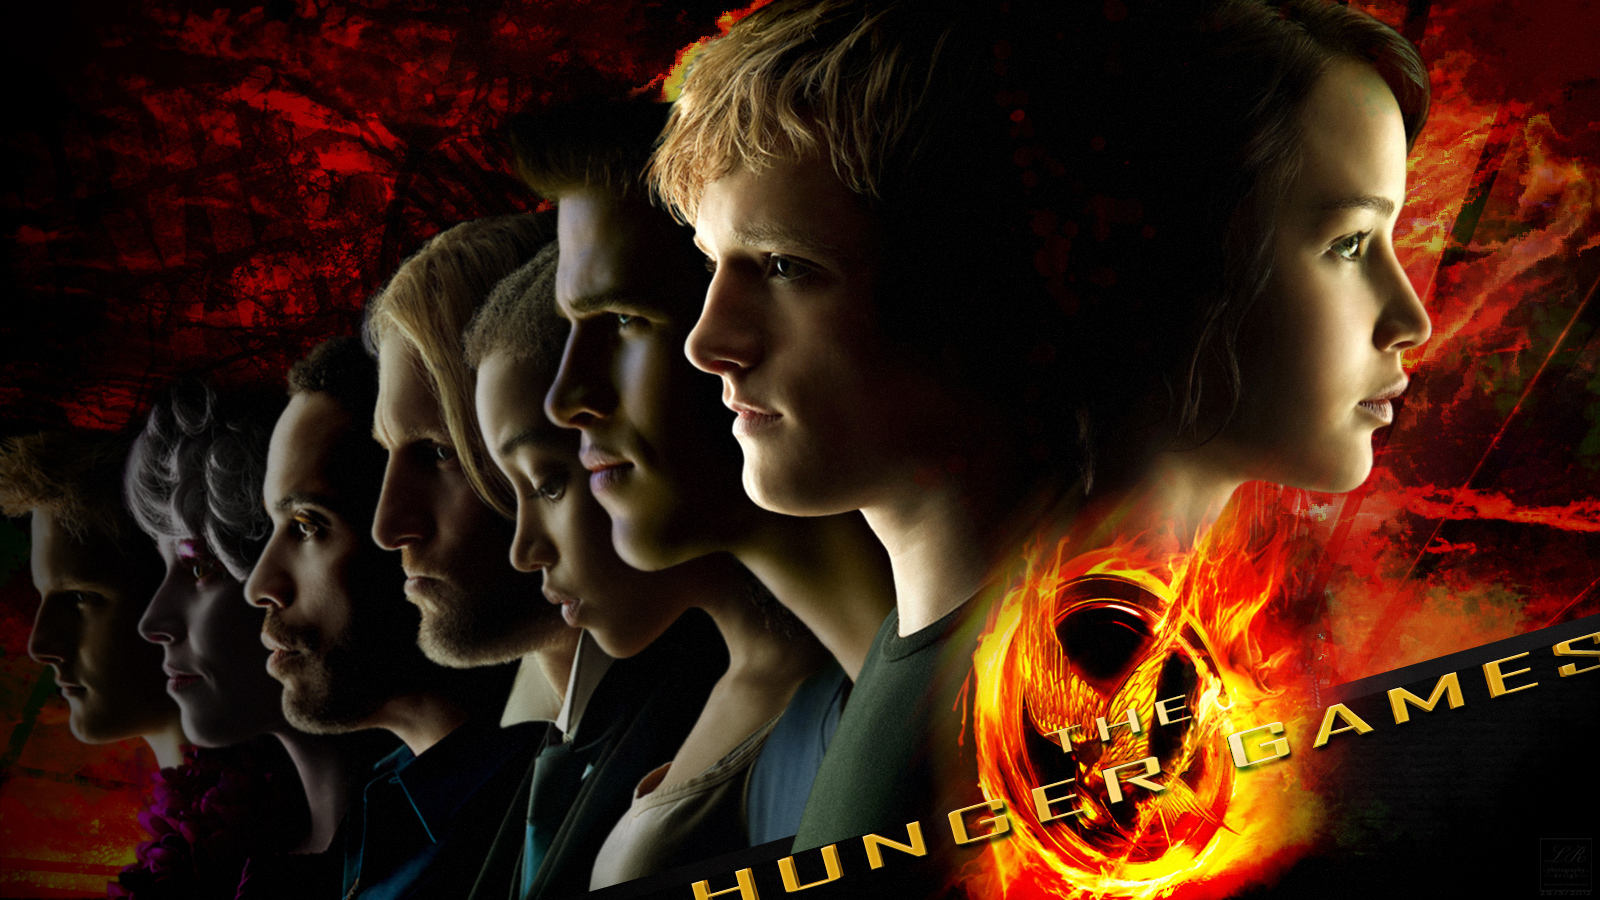 The Hunger Games images The Hunger Games wallpaper photos 30366729 1600x900